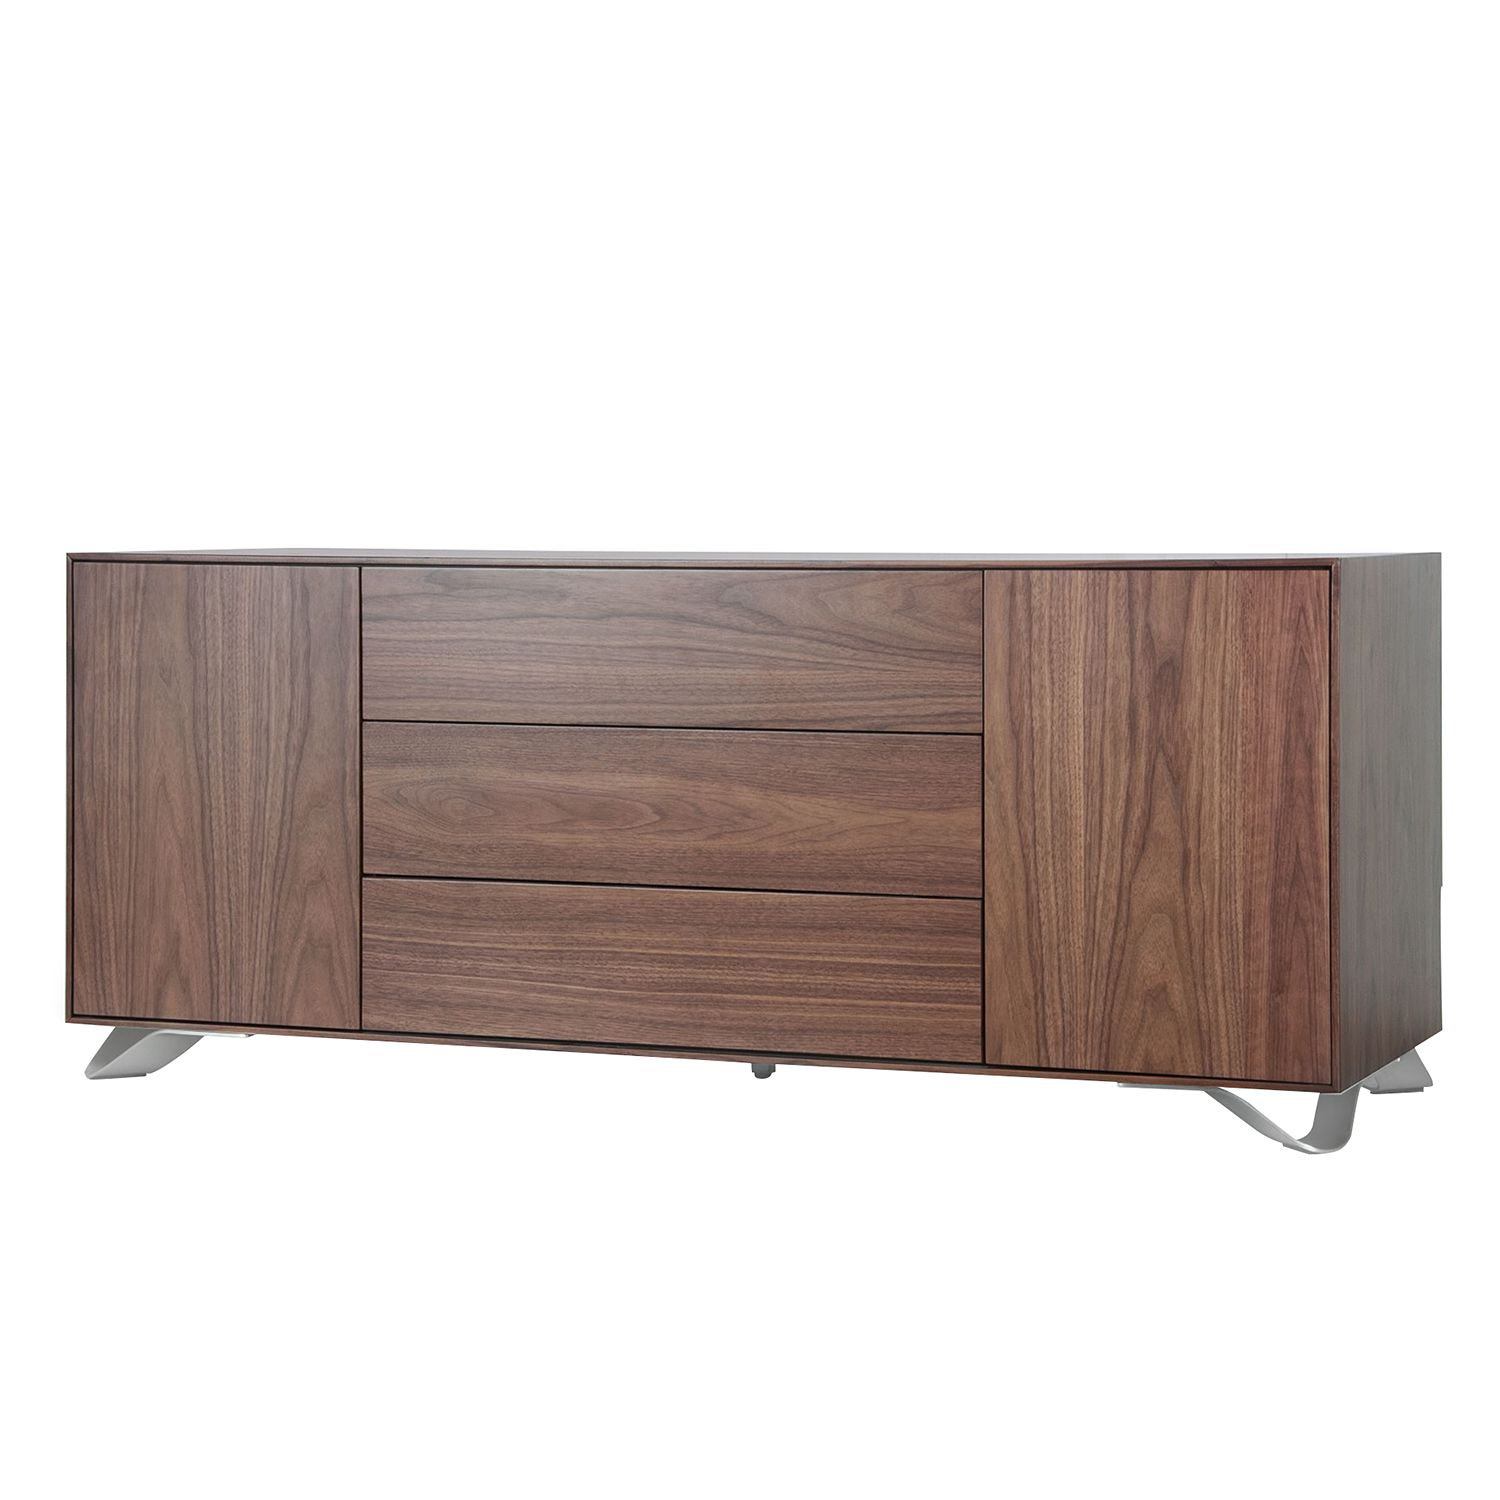 walnuss baltimore sideboard preisvergleich die besten angebote online kaufen. Black Bedroom Furniture Sets. Home Design Ideas